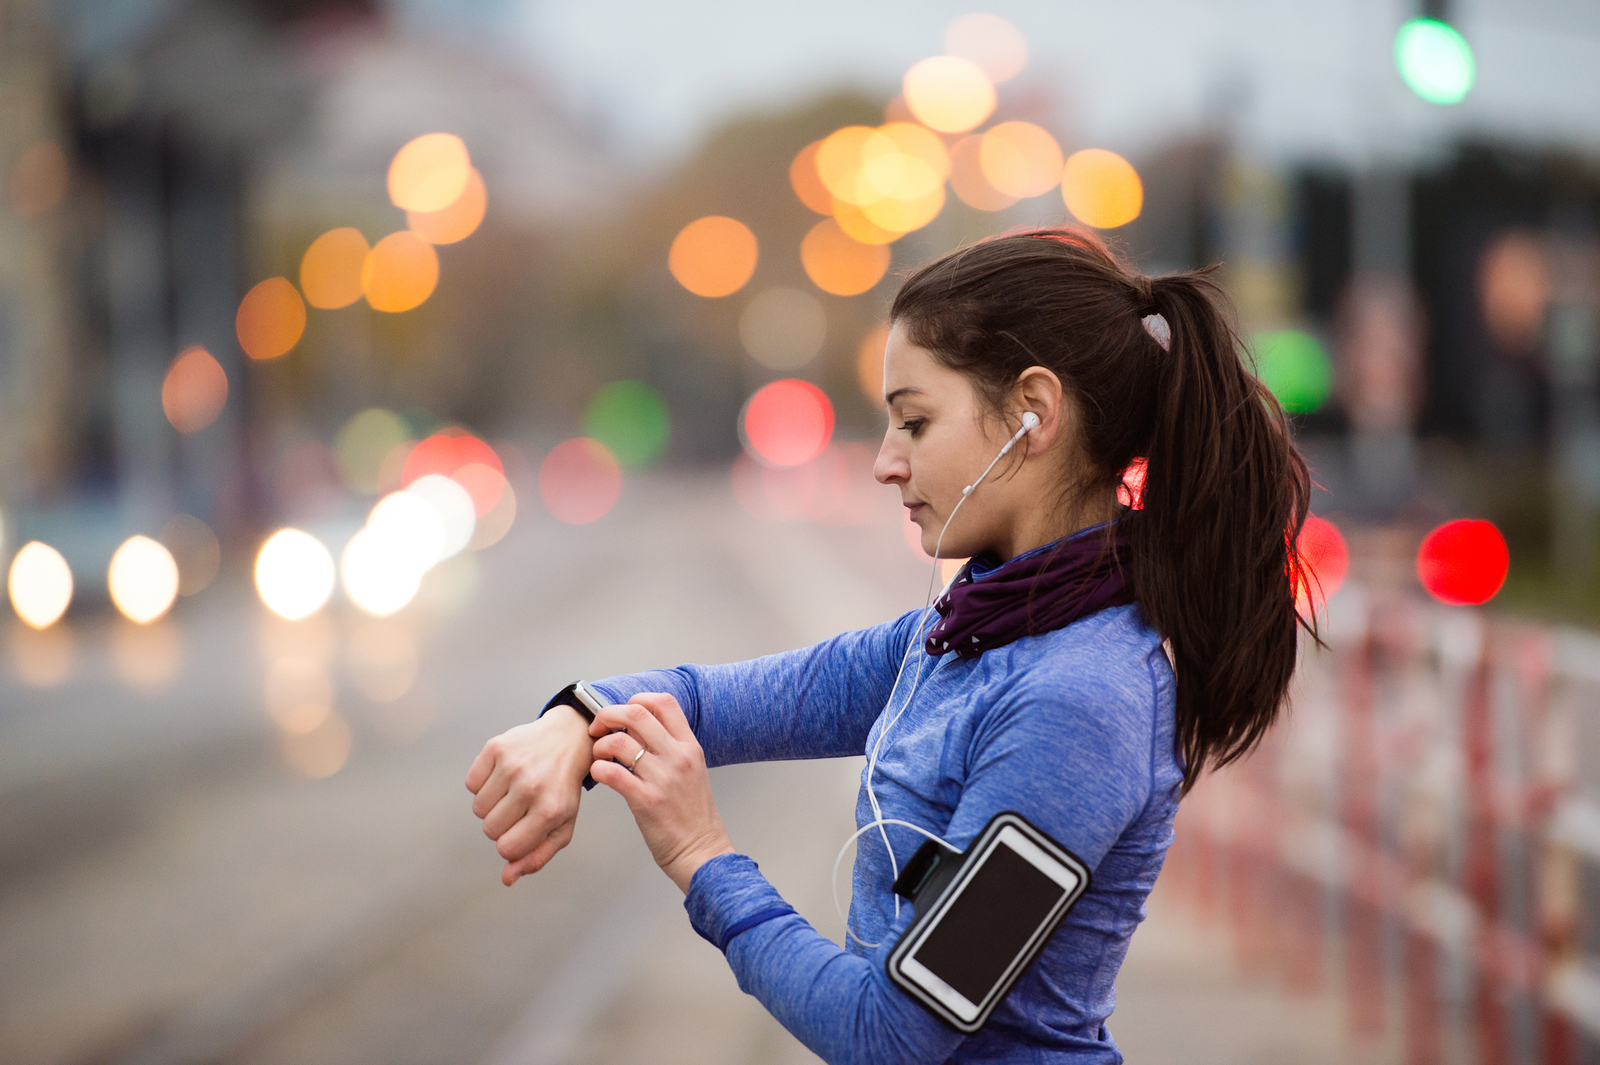 Beautiful young woman in the city with smart phone, smartwatch and earphones, listening music. Using a fitness app for tracking weight loss progress, running goal or summary of her run.